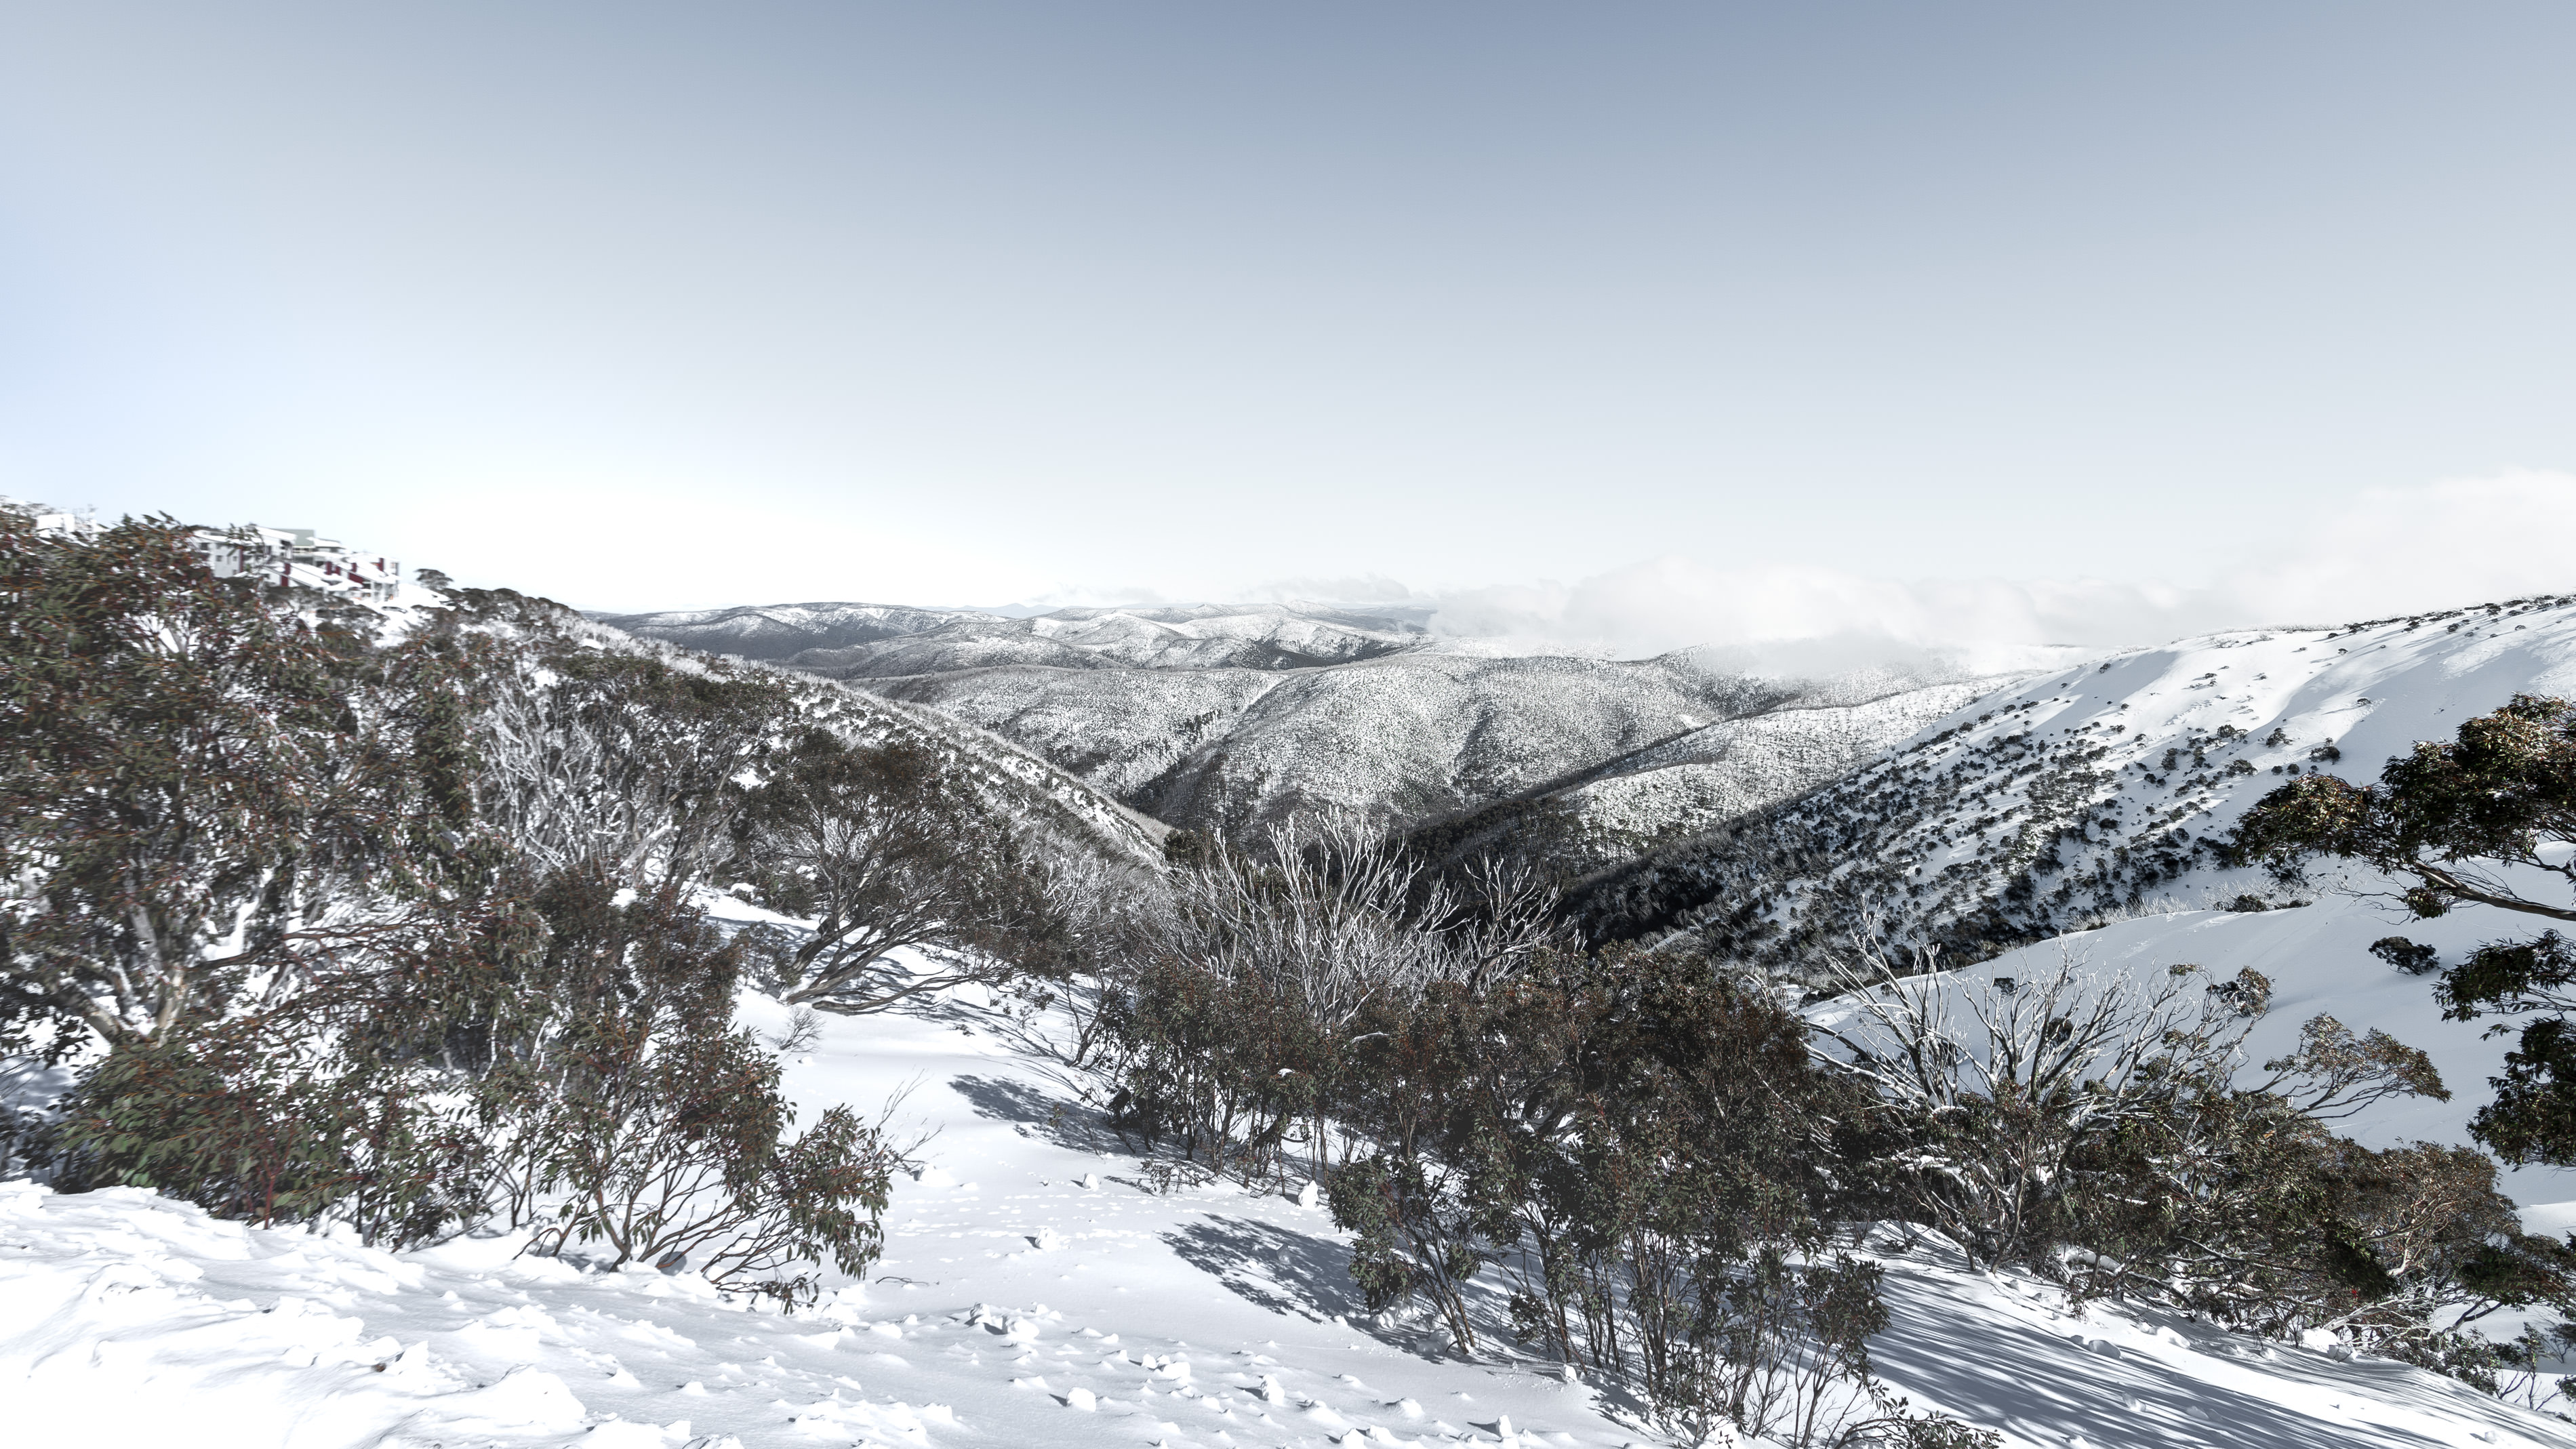 Travel photography of Mt Hotham's Snowy Peaks